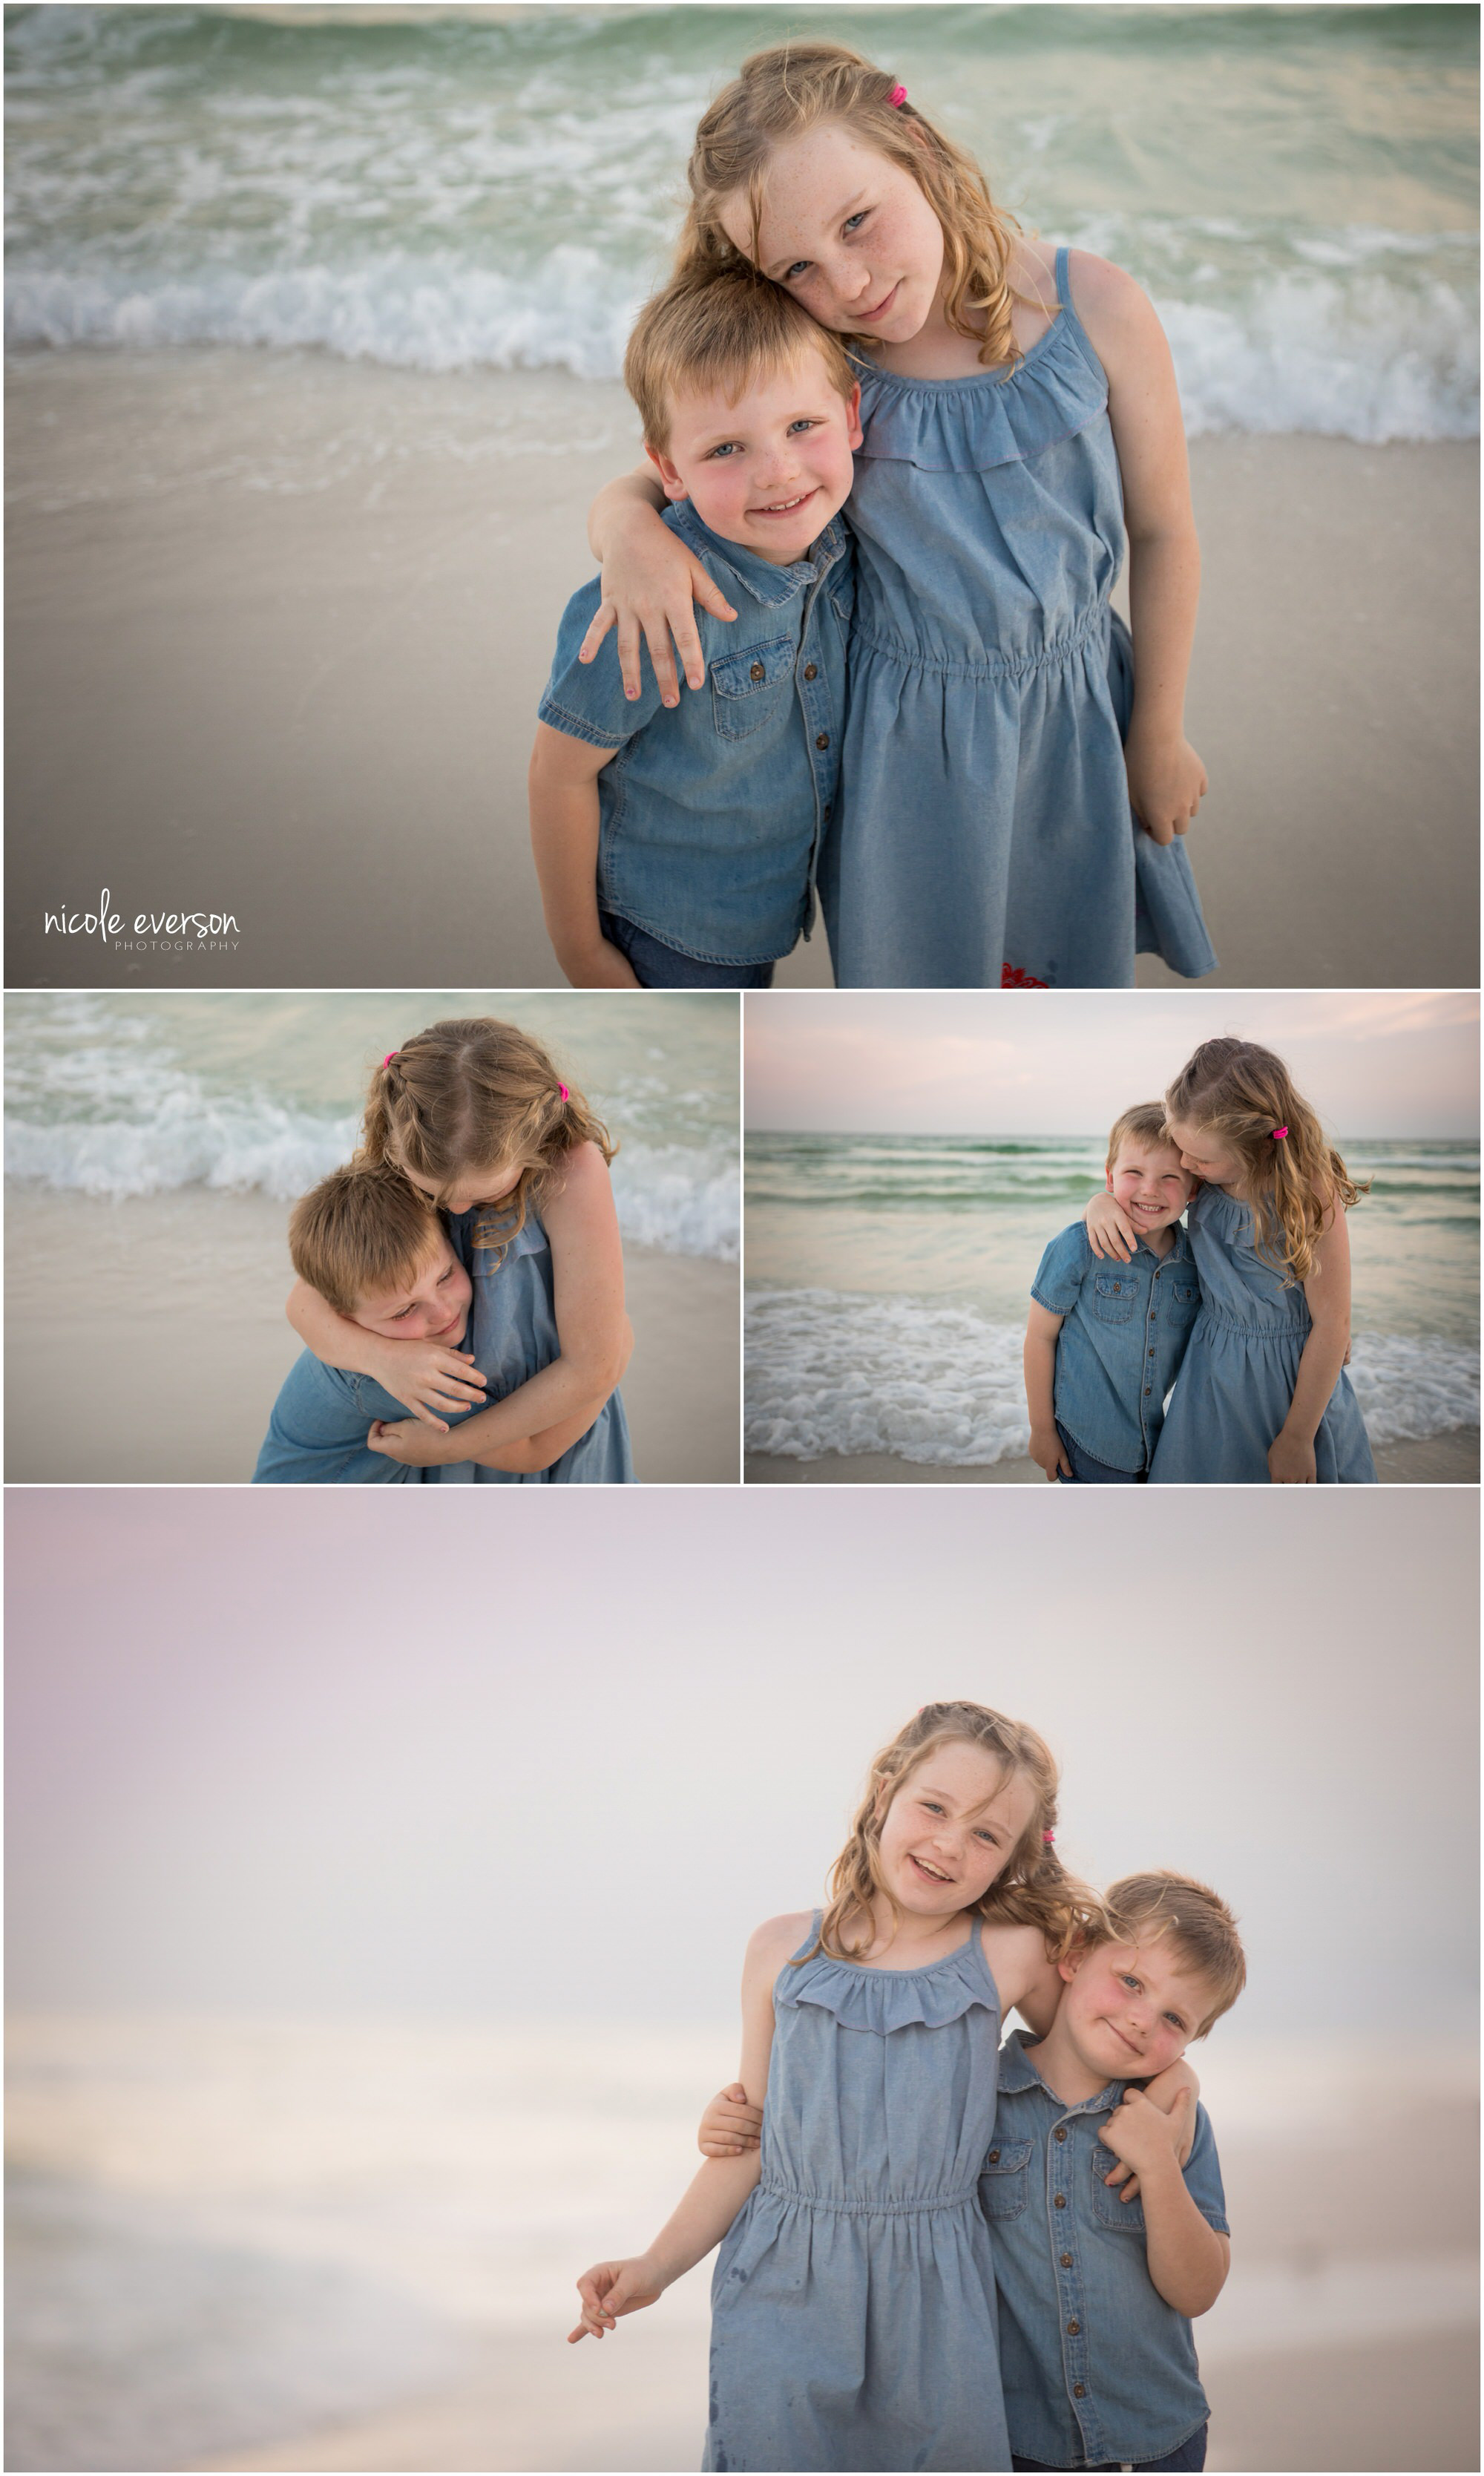 destin photographer Nicole Everson Photography